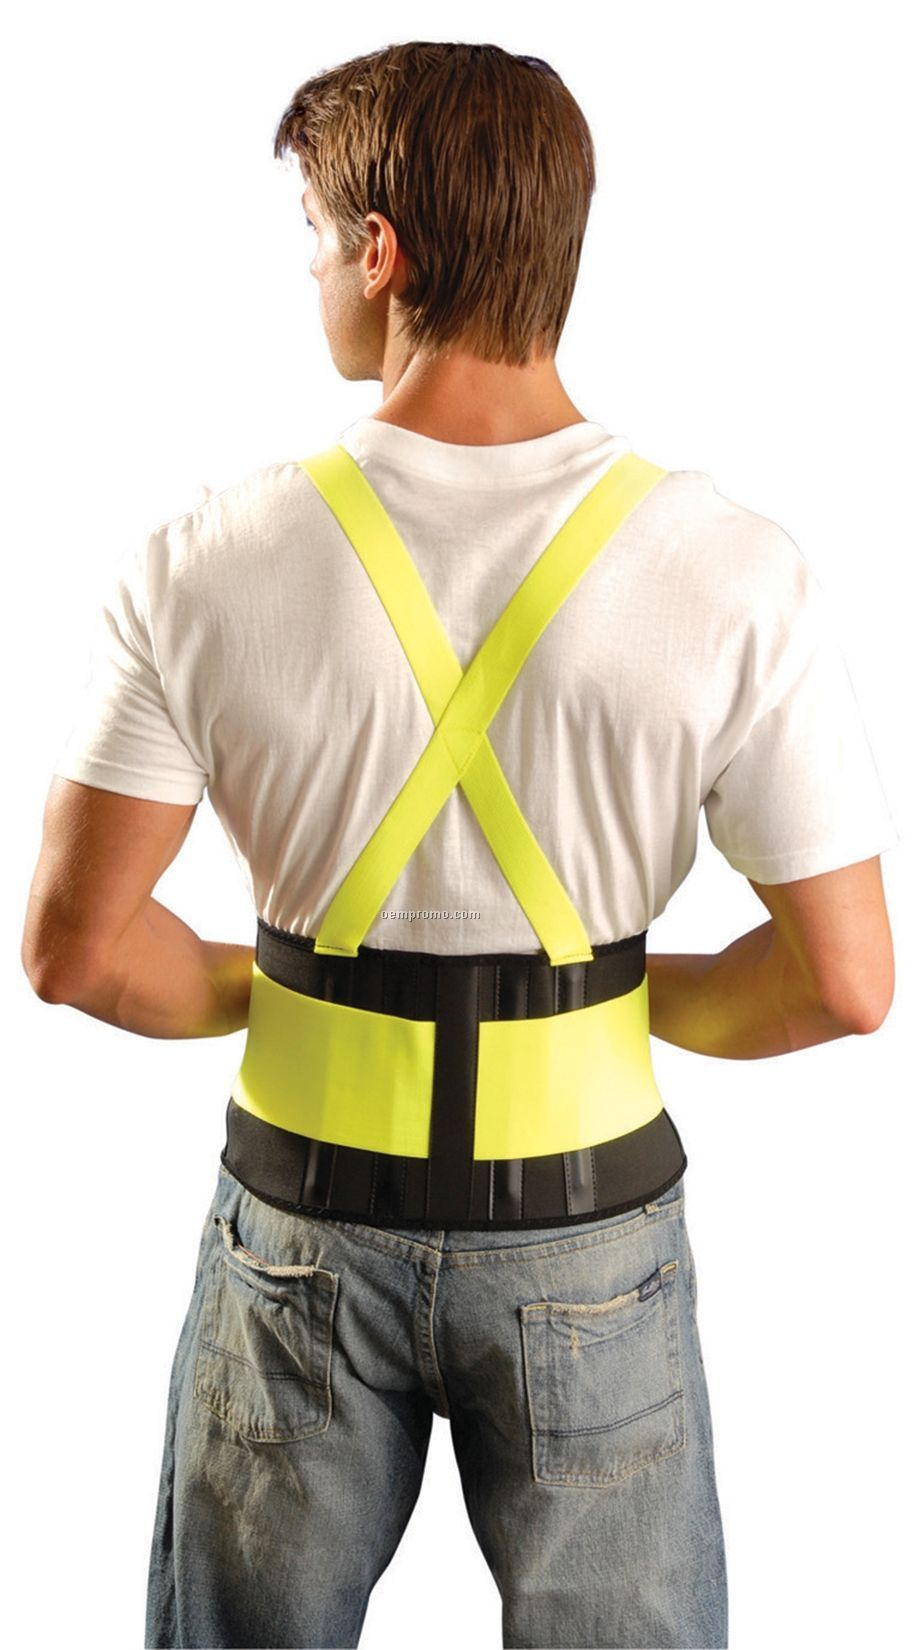 Classic The Mustang Back Support - High Visibility